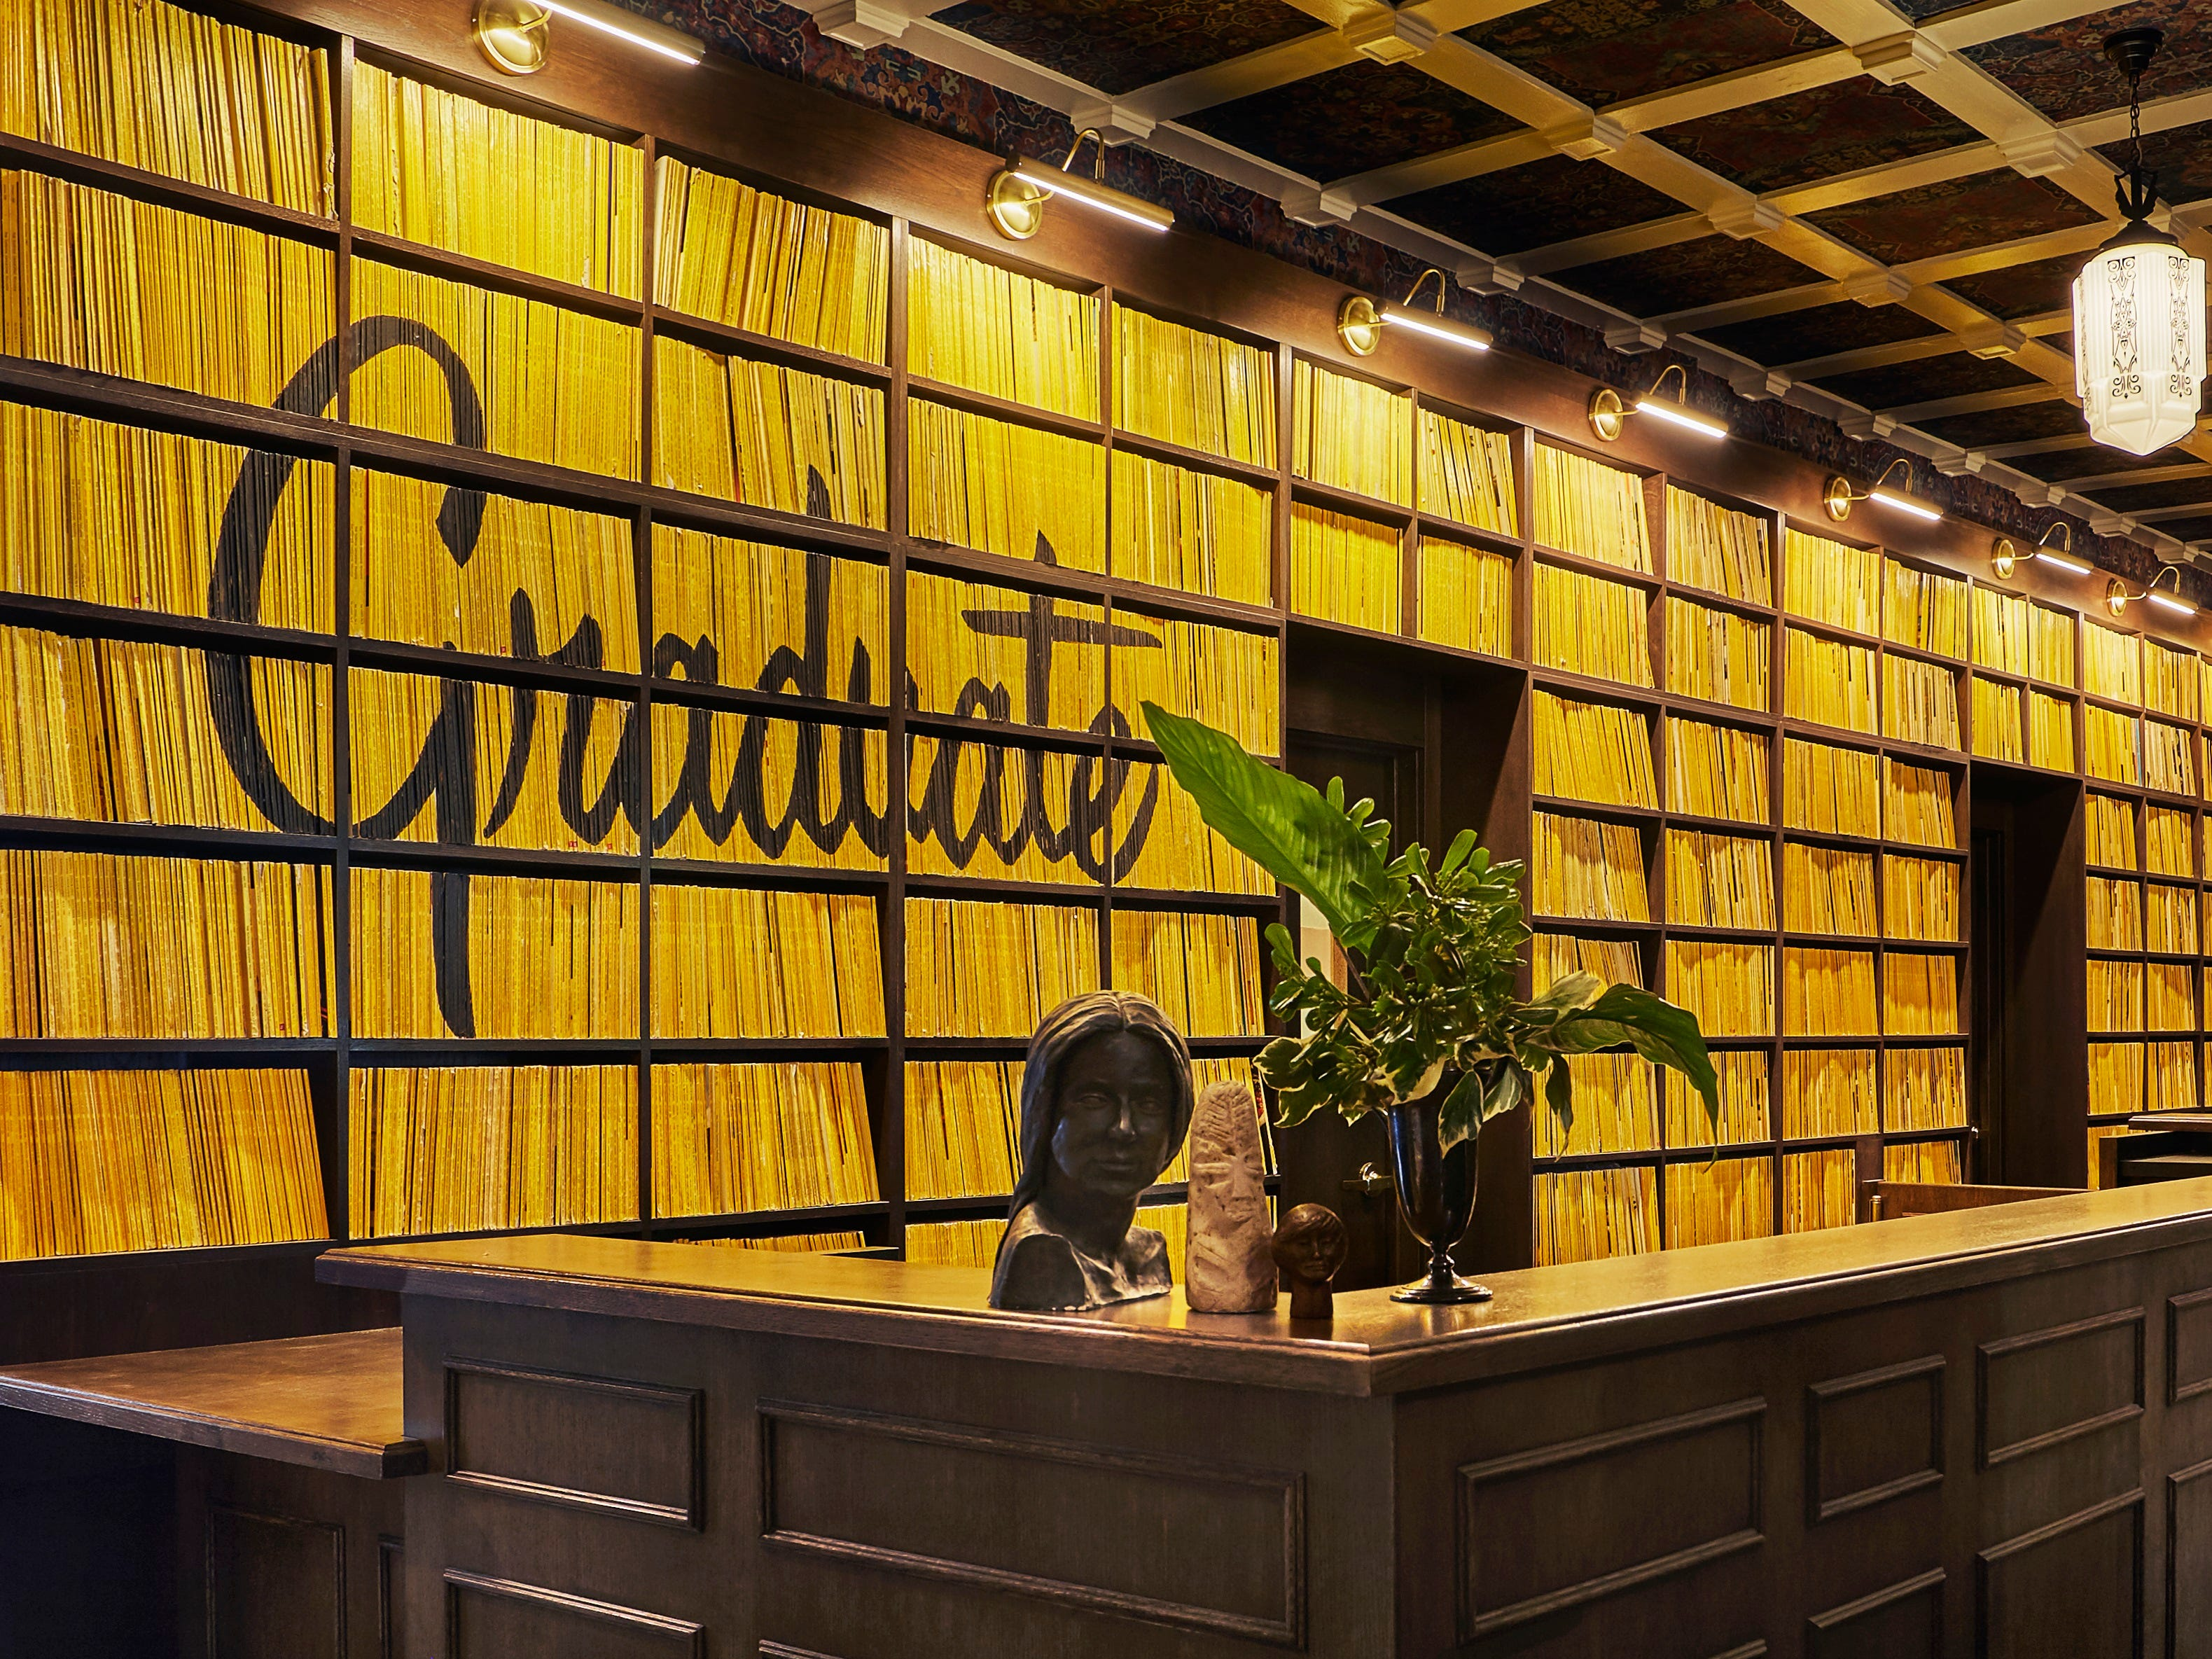 The playful Graduate Hotel in Berkeley, California, pays homage to the University of California, Berkeley with clever decorations including a wall of National Geographic magazines behind the counter, and  even a bong-shaped lamp in guest rooms.